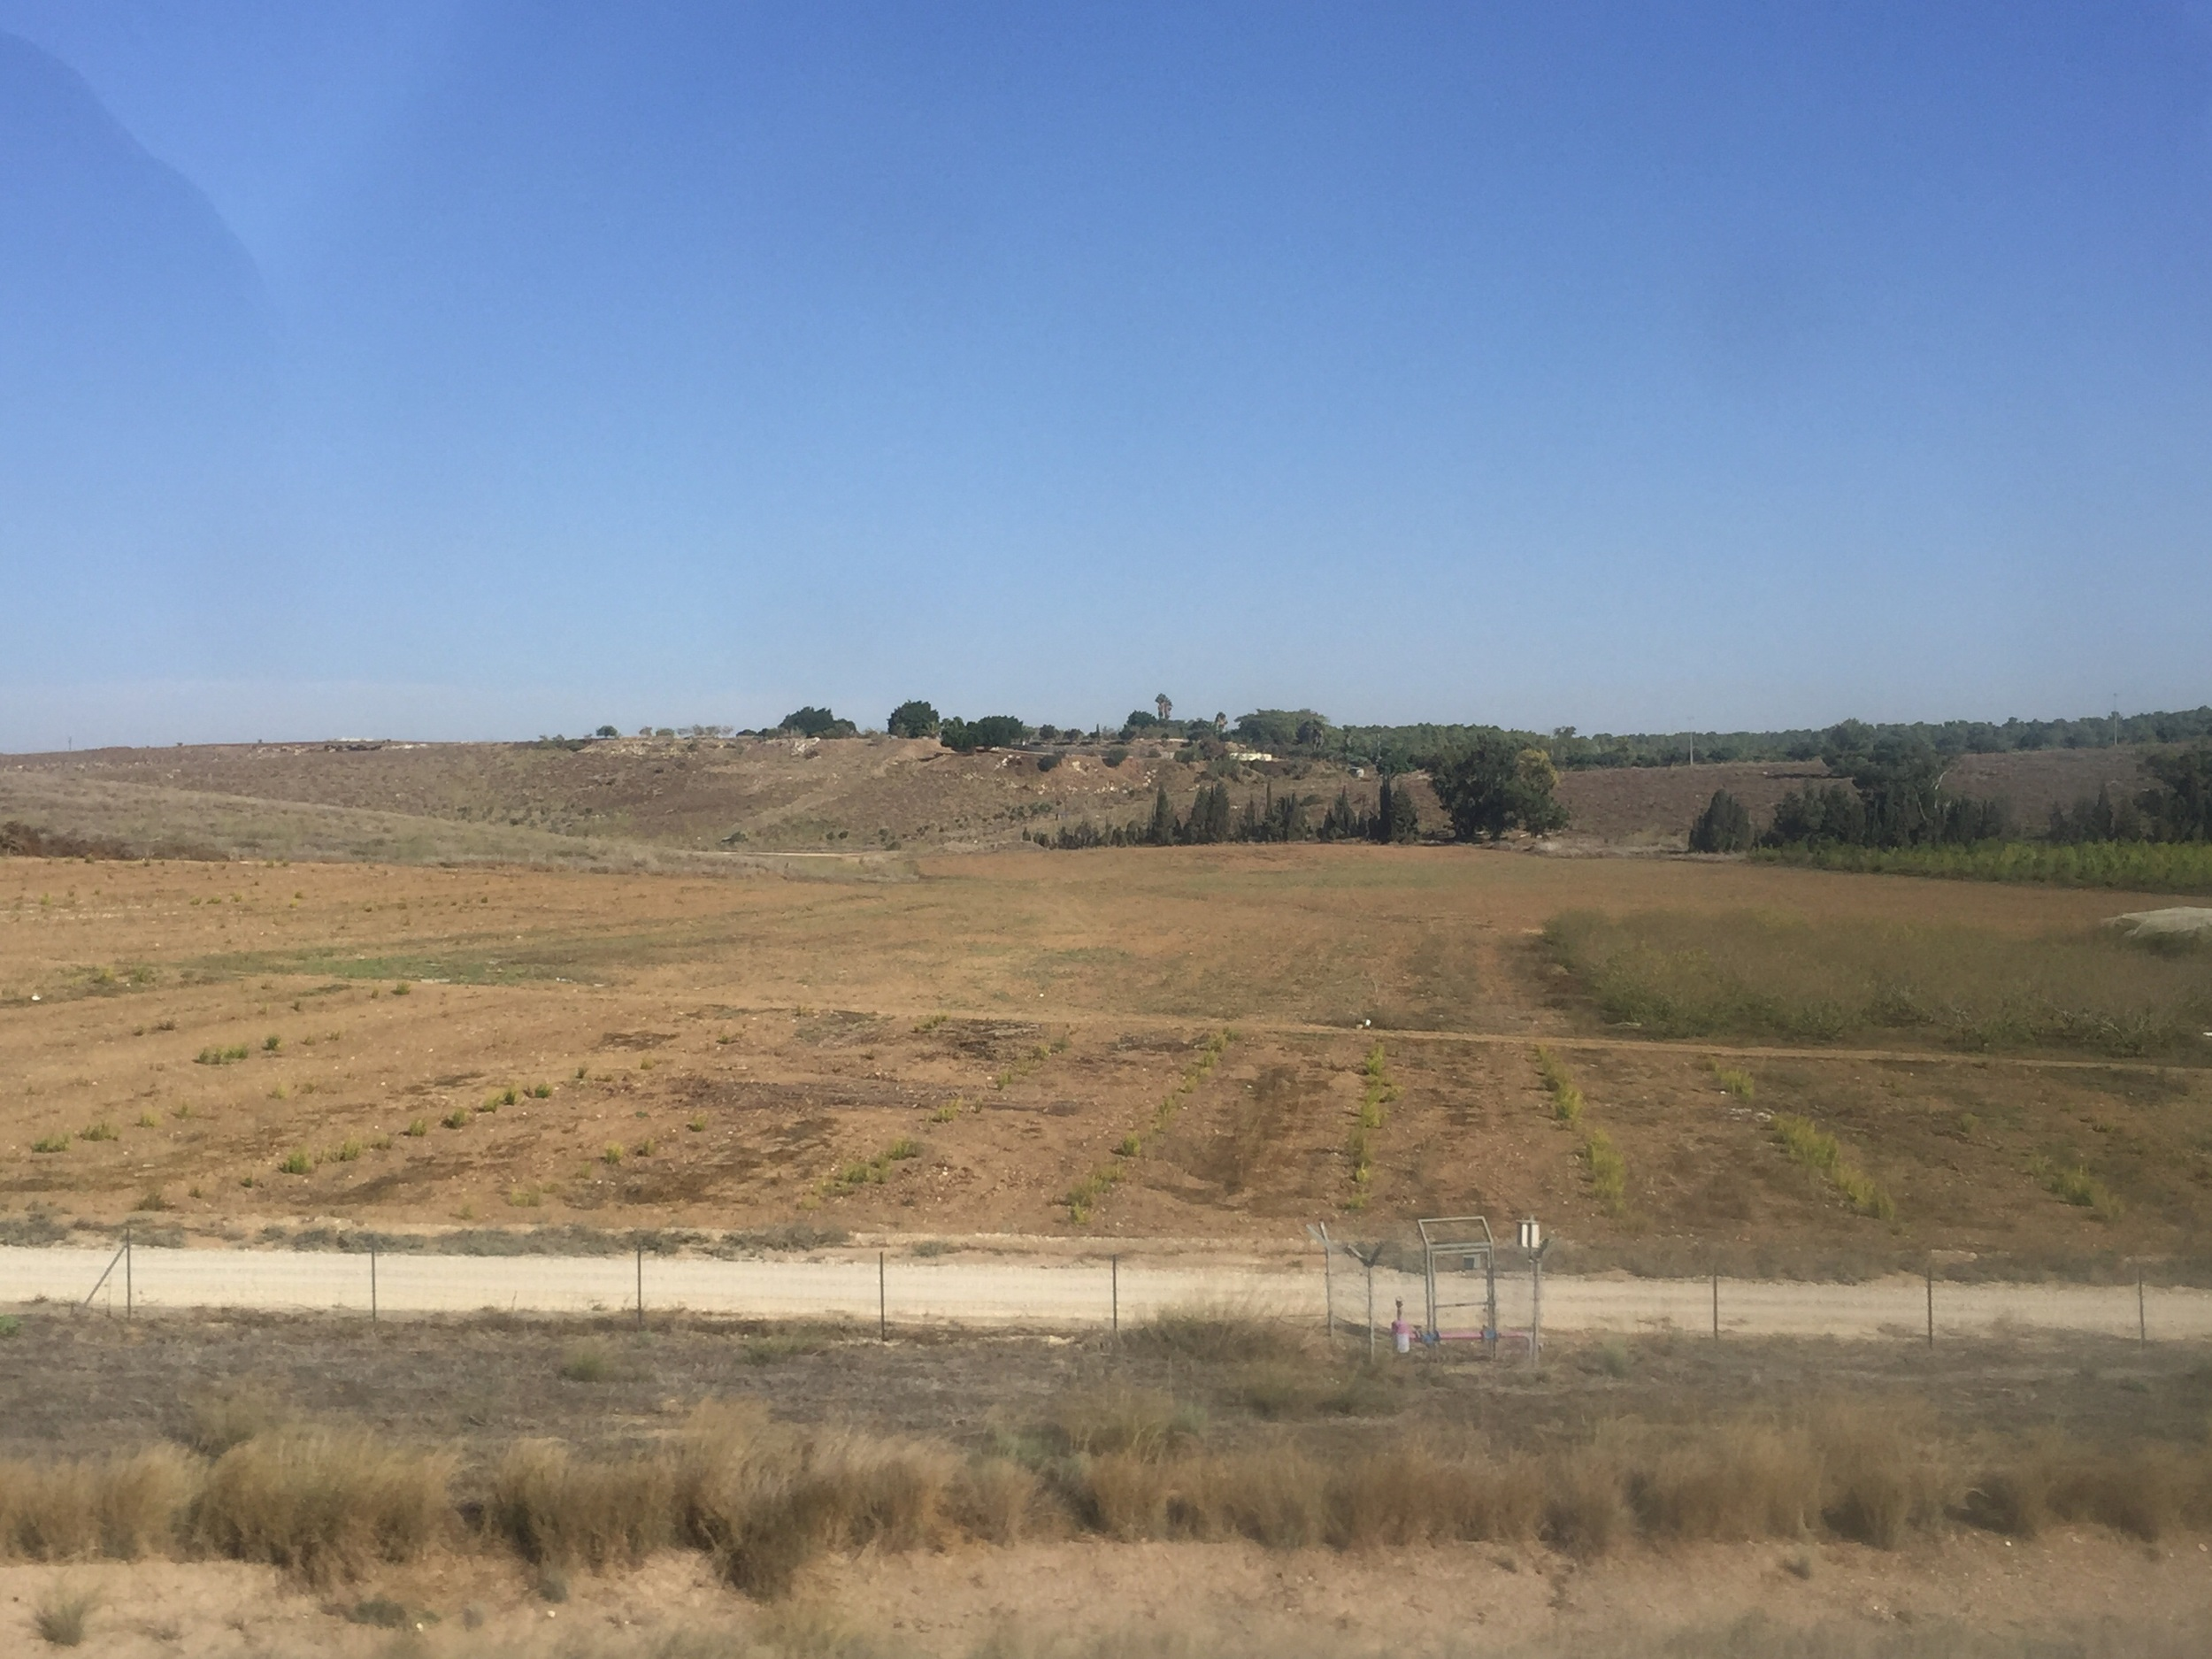 As we drove back to Jerusalem from the Shephelah, we passed the tel of Gath, the hometown of Goliath.  The tel has stones and trees on the hill in the background.